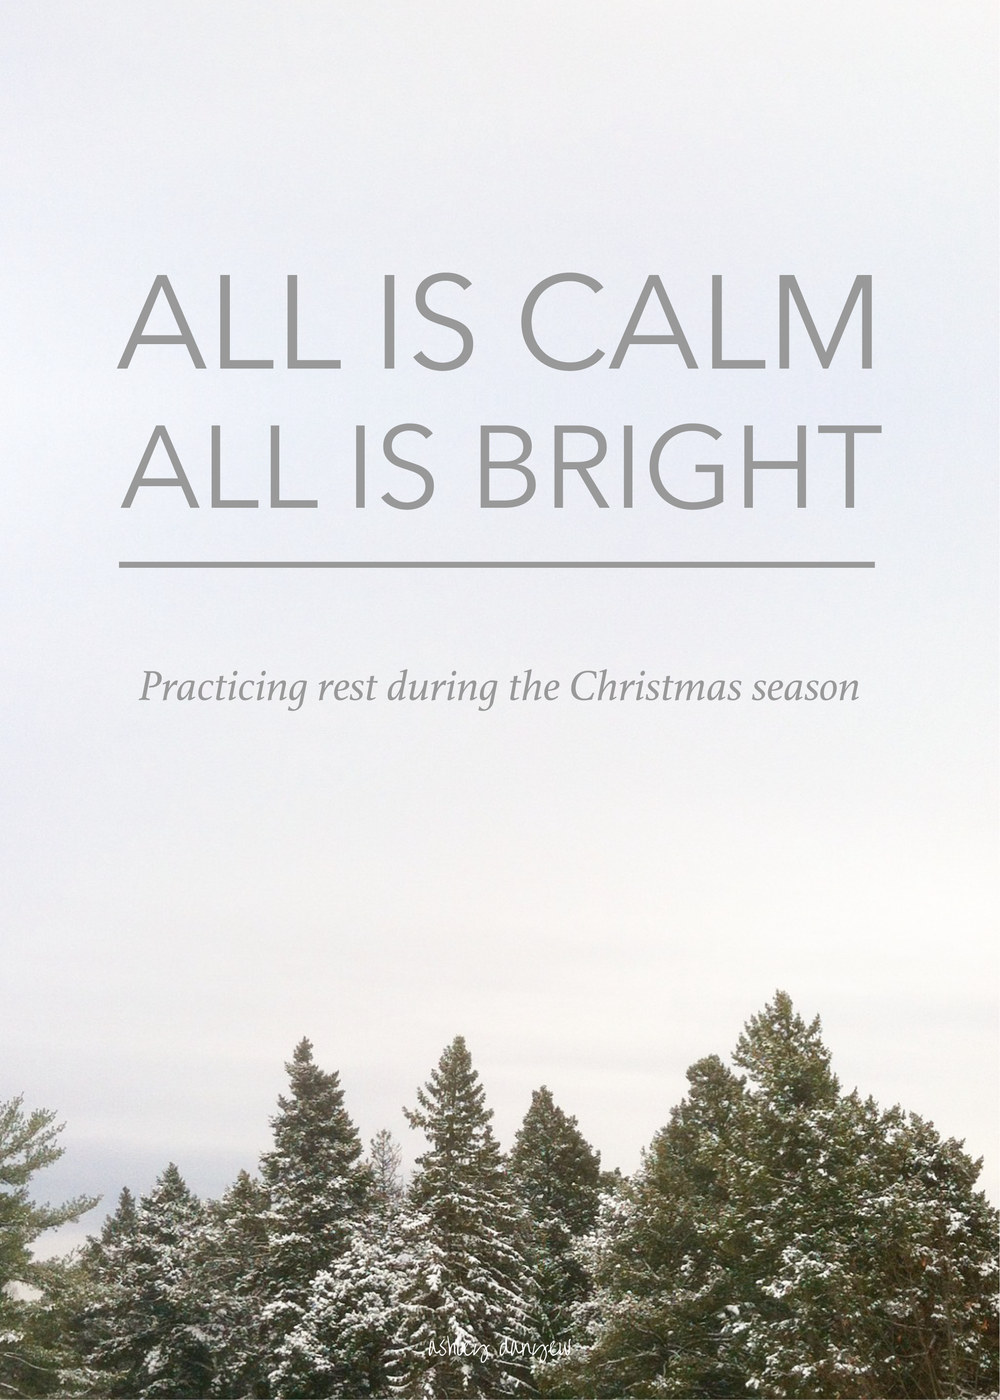 All-Is-Calm-All-is-Bright-01.png